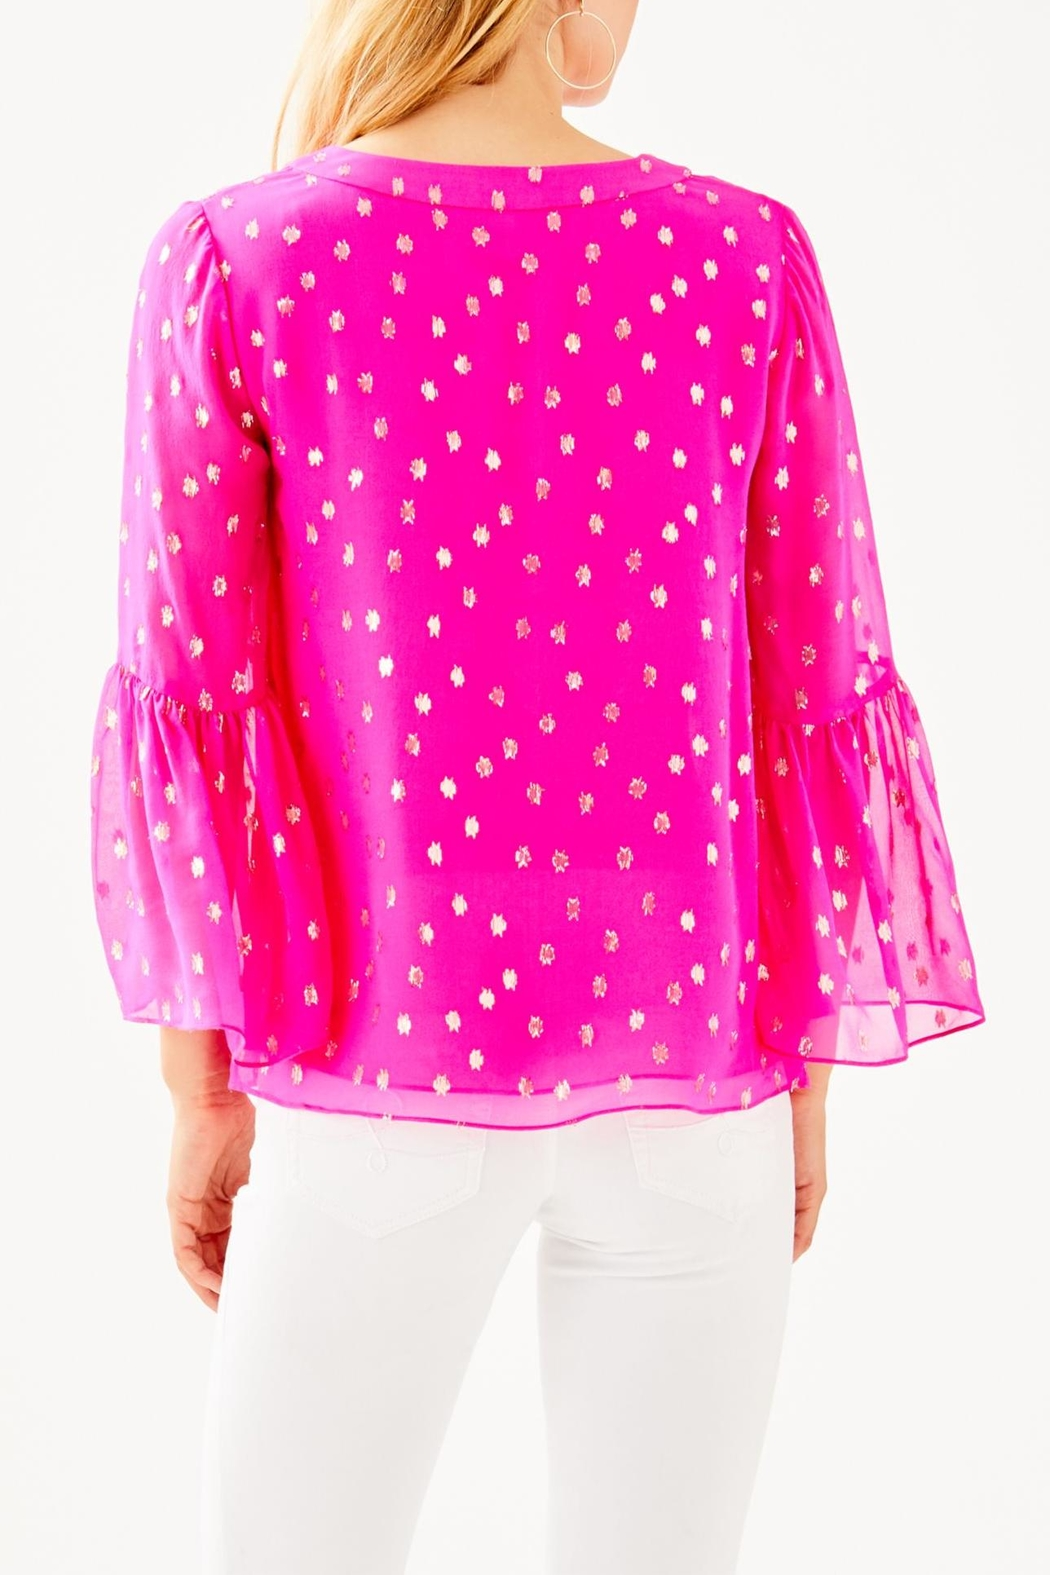 Lilly Pulitzer Amory Top - Front Full Image